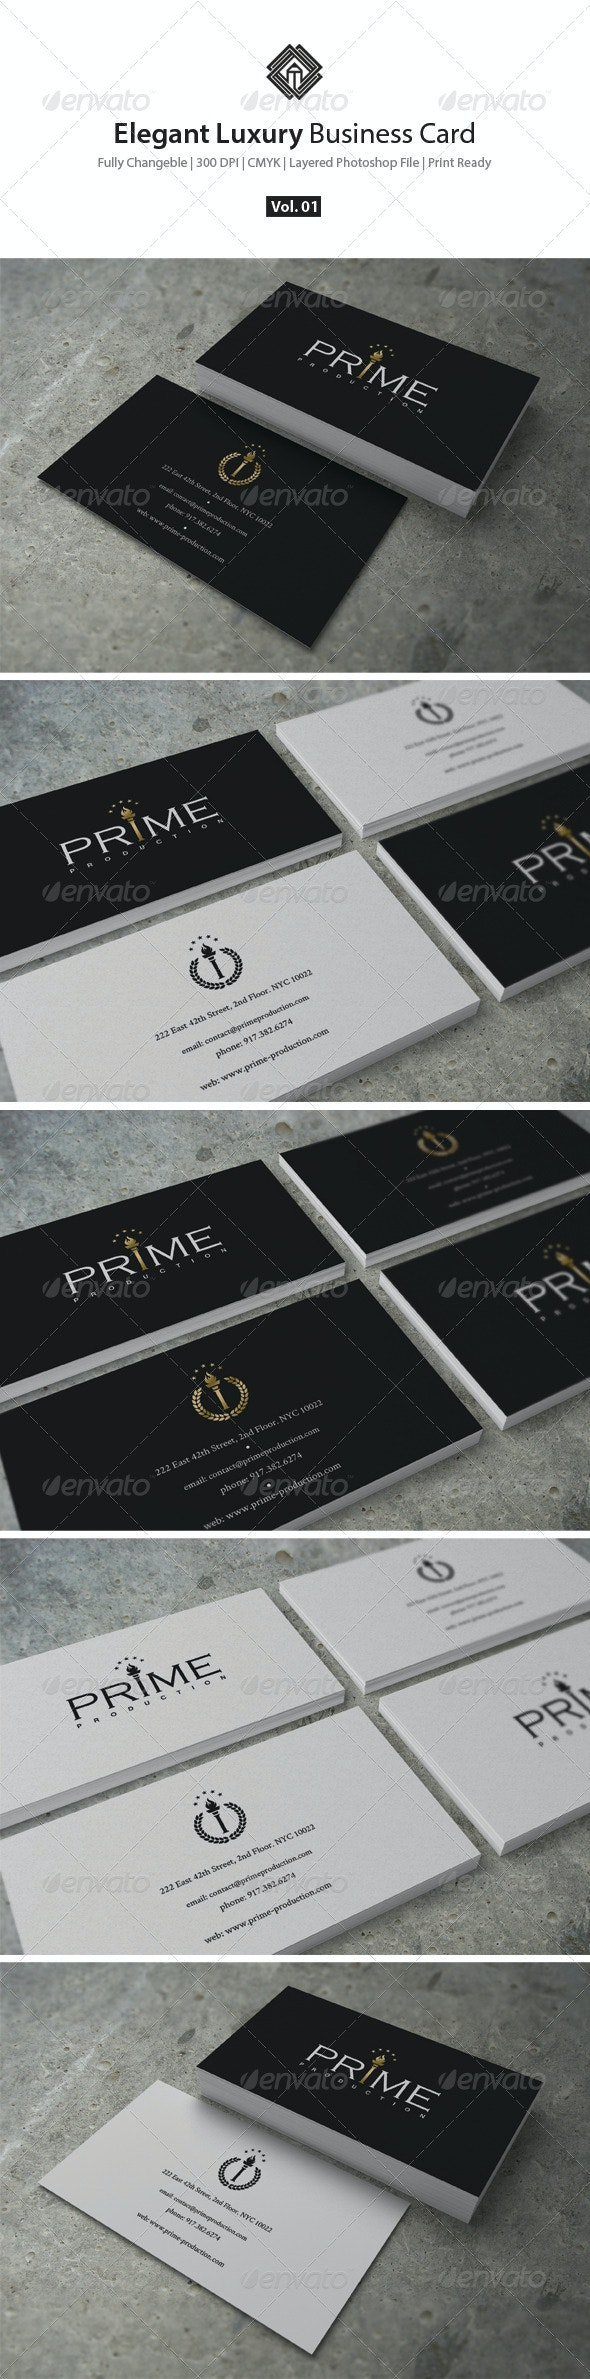 Elegant Luxury Business Card - Corporate Business Cards